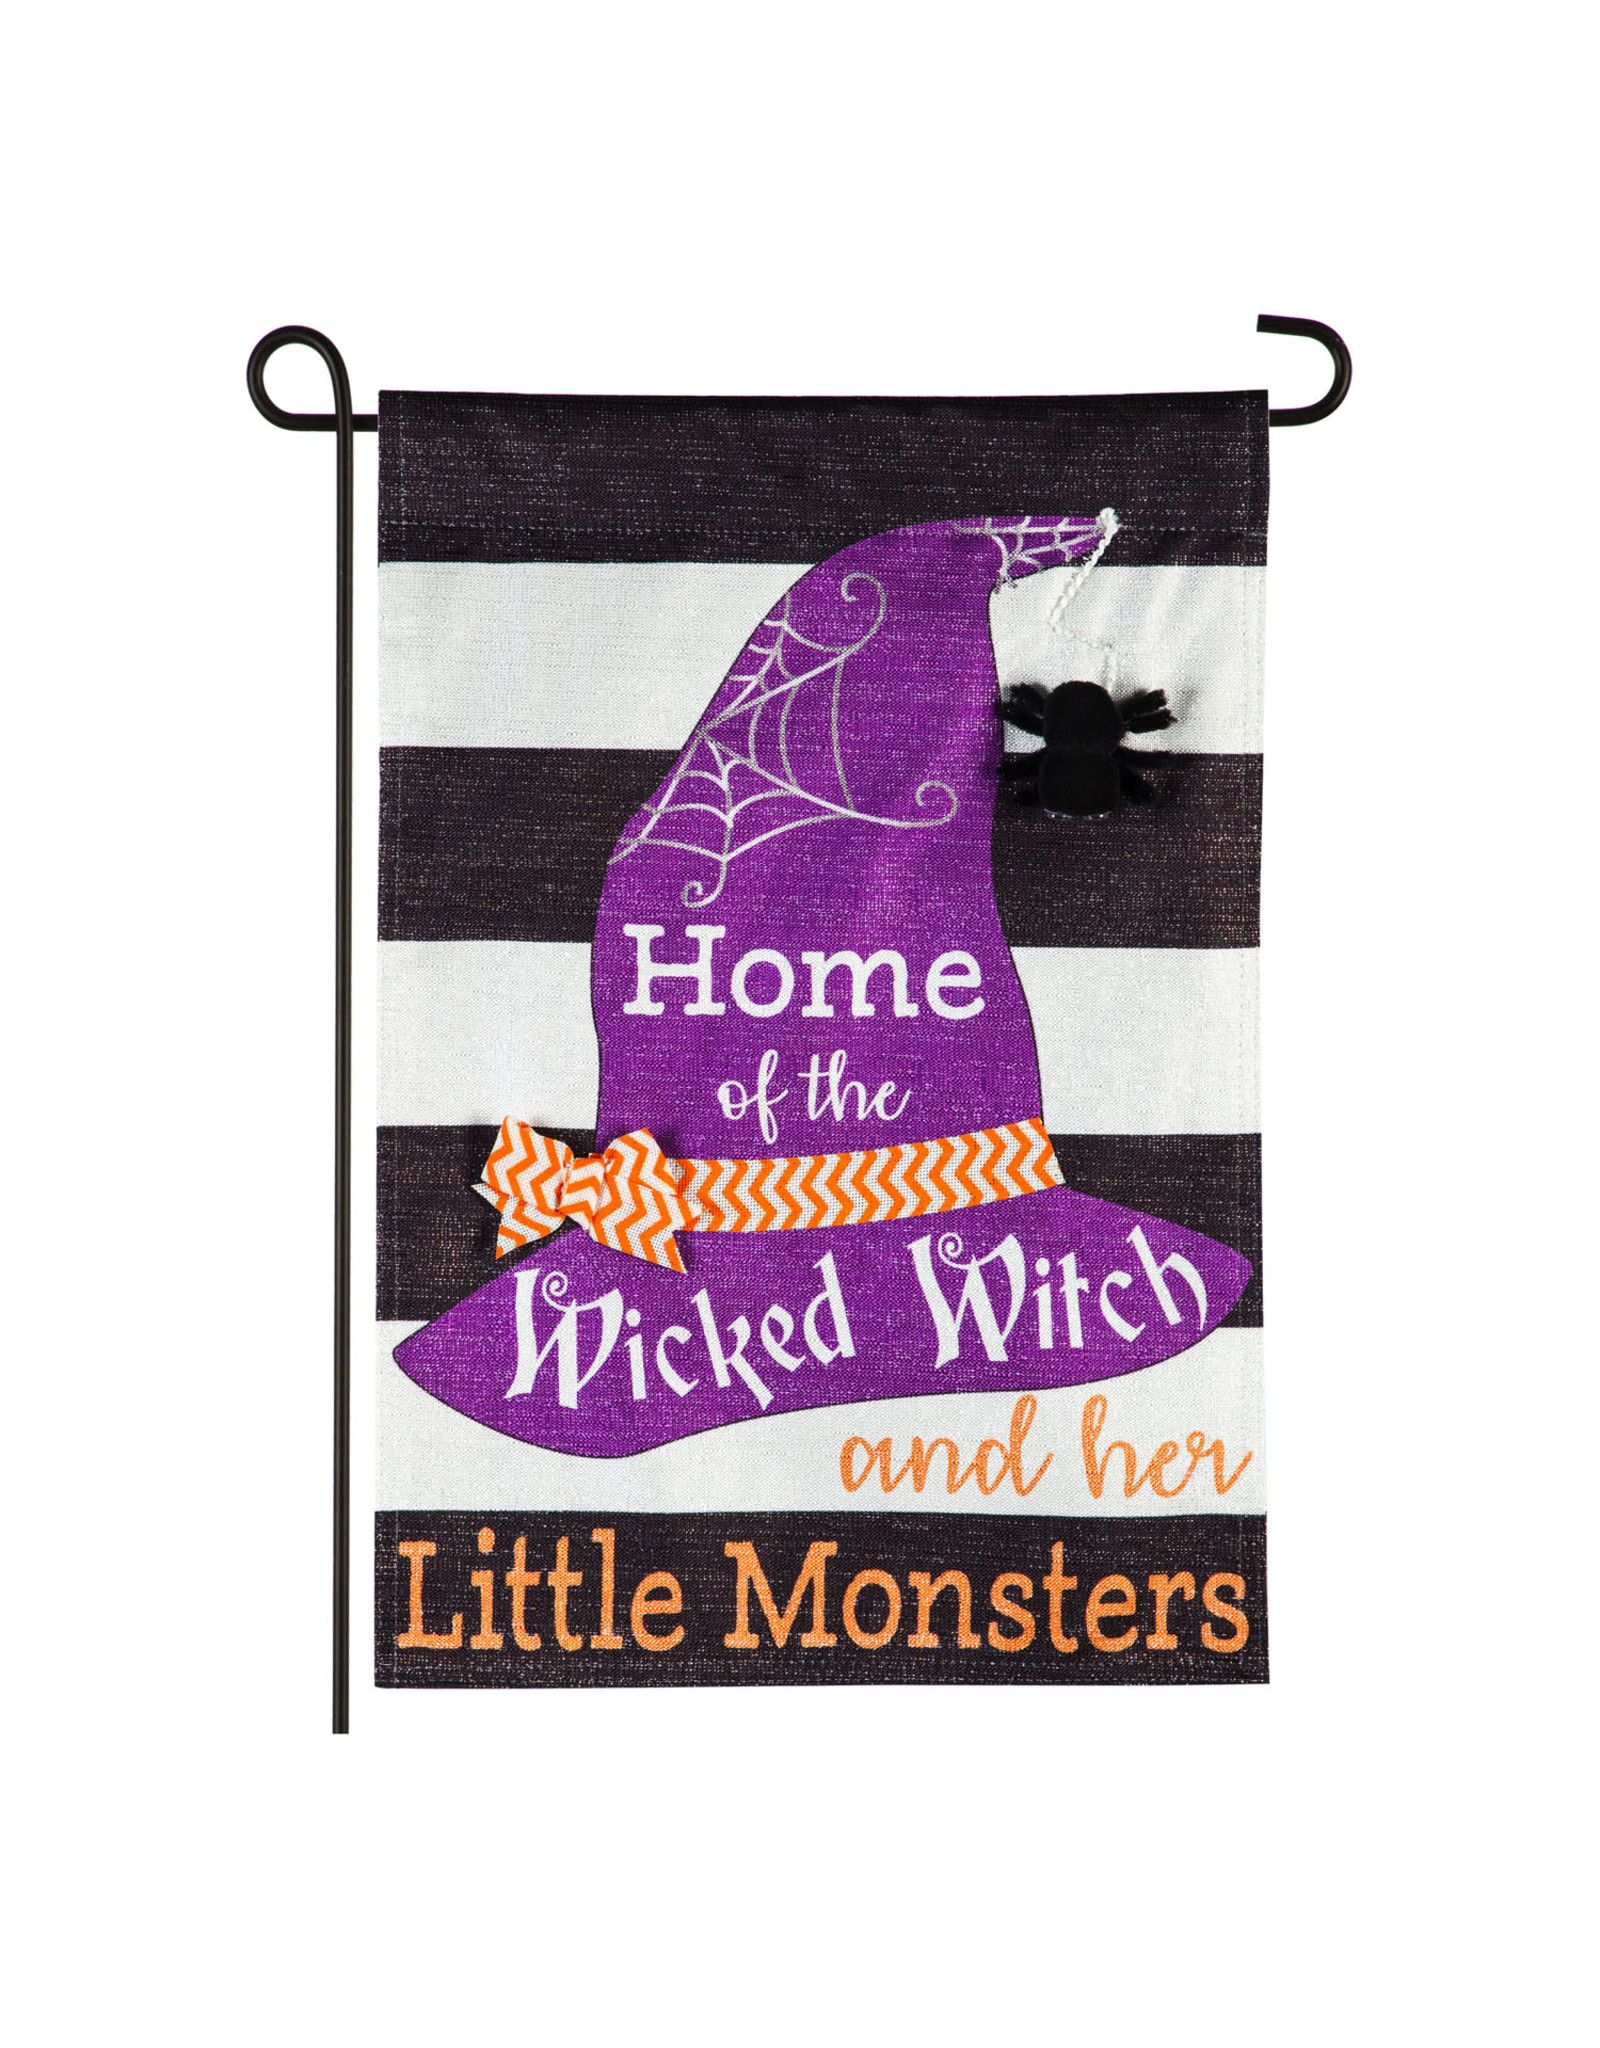 Evergreen Enterprises Wicked Witch and her Little Monsters Garden Linen Flag